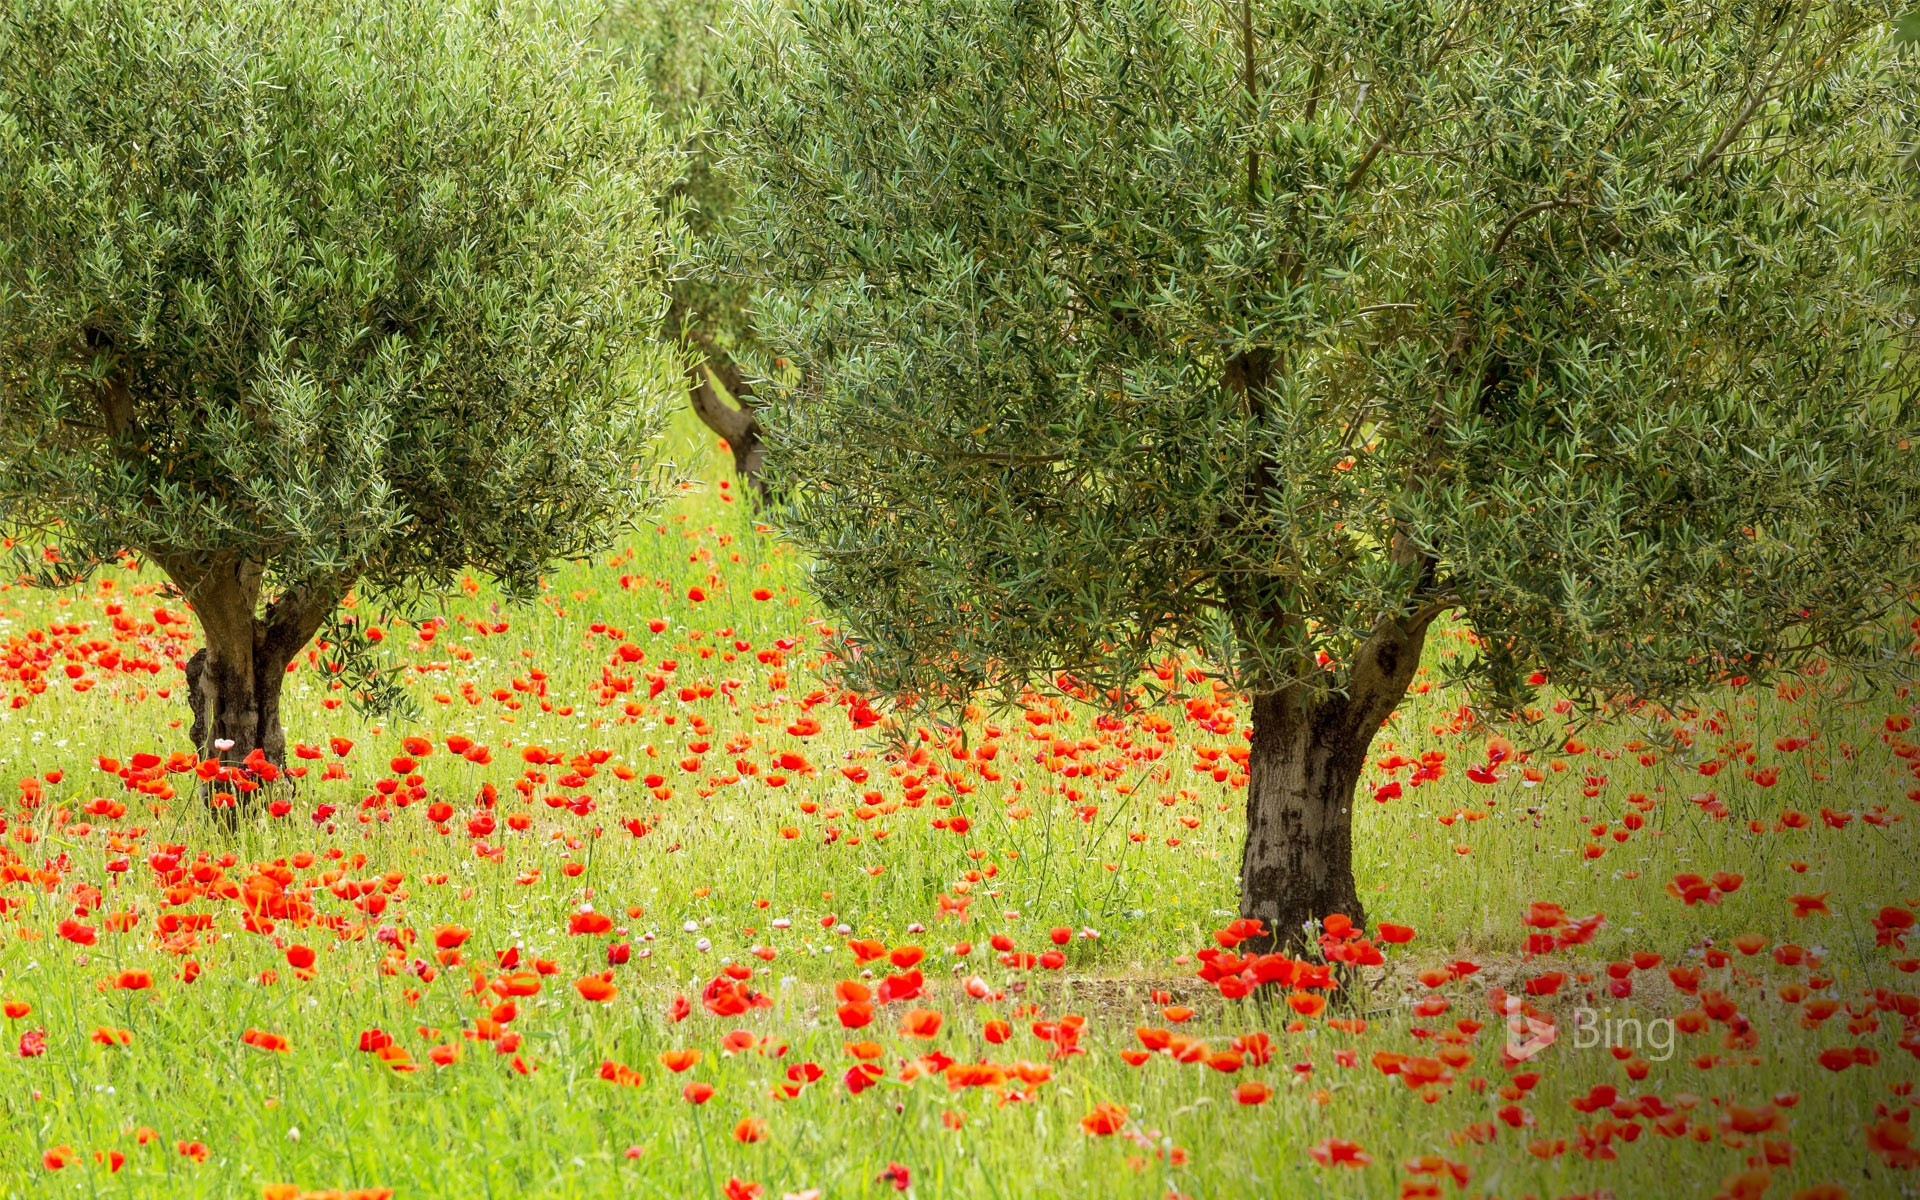 Olive trees and poppies in Luberon Regional Nature Park, France